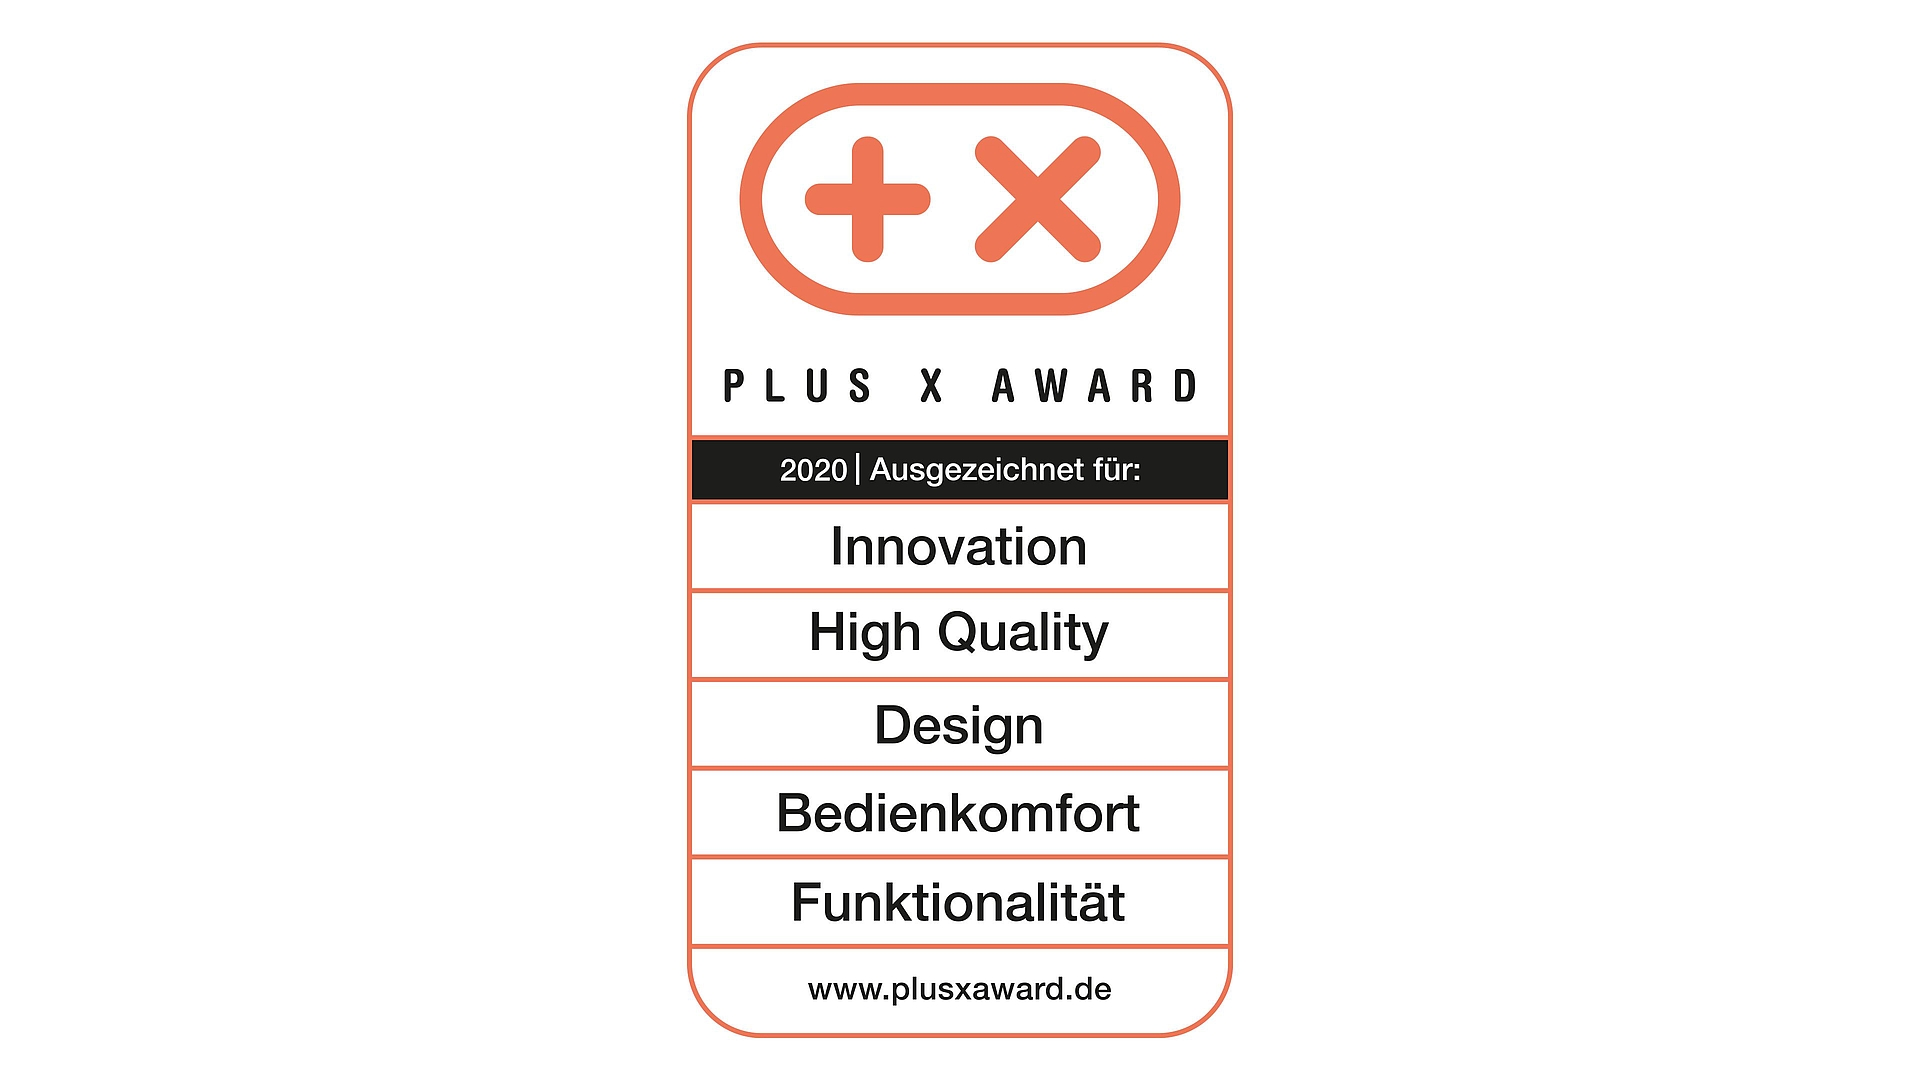 Award_Plus_X_Award_2020_DE_thumb.jpg